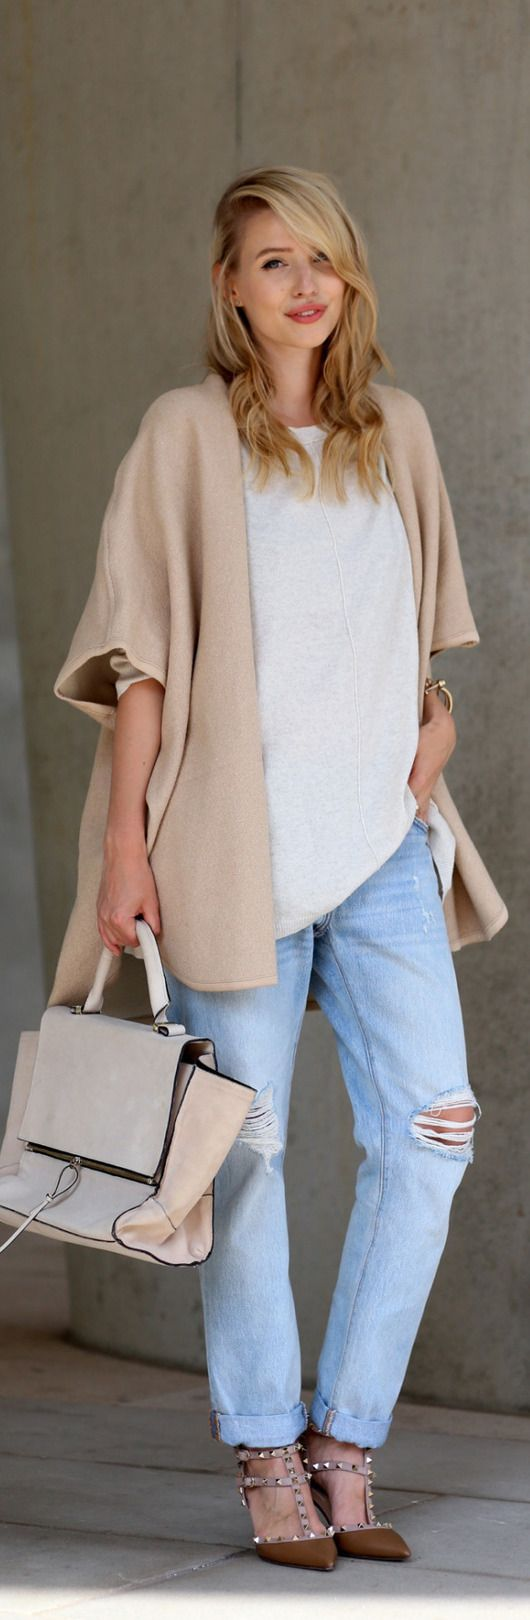 Leonie Sophie's combination of boyfriend jeans and an oversized sweater is definitely an outfit we love this fall!